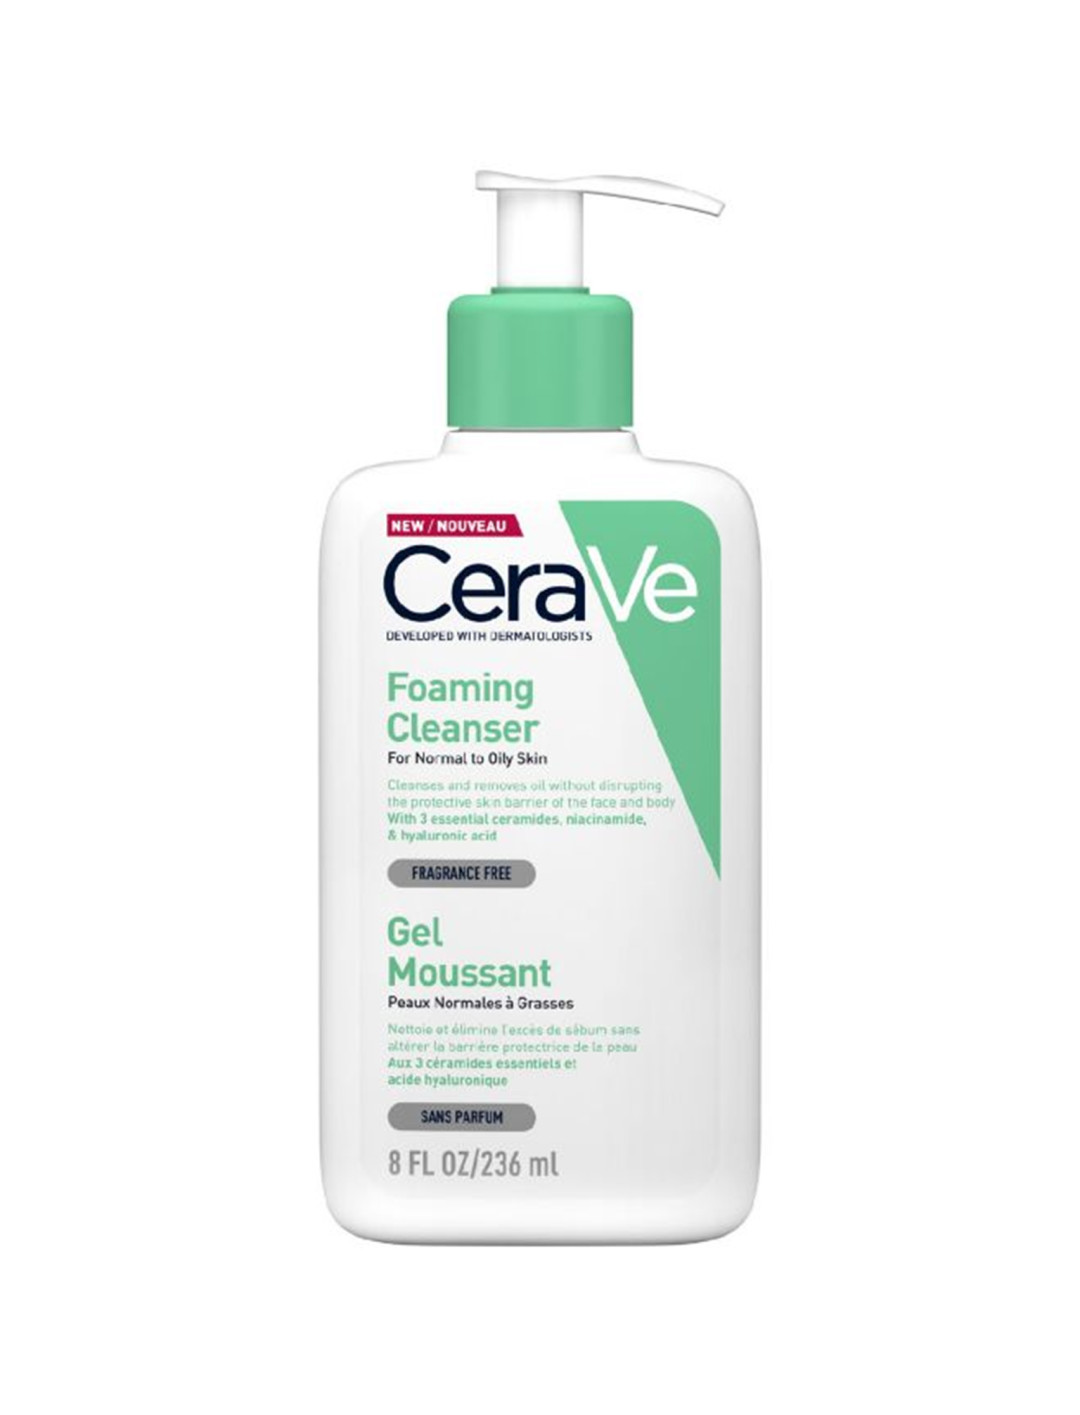 Foaming Cleanser For Normal To Oily Skin